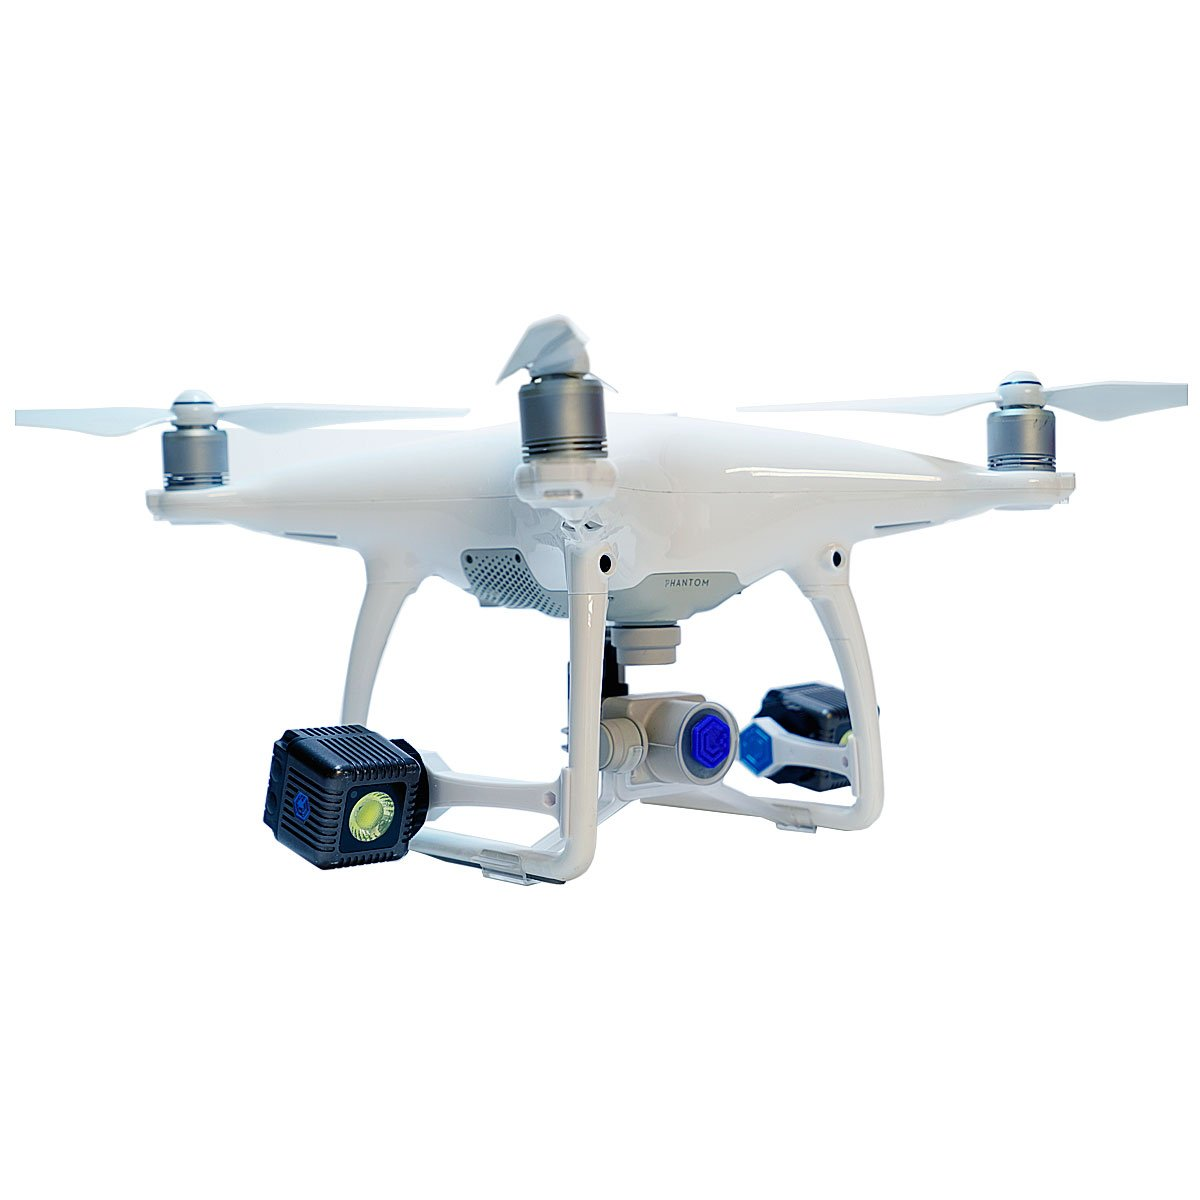 Lume Cube - Drone Mount Kit for DJI Phantom 4 by Lume Cube